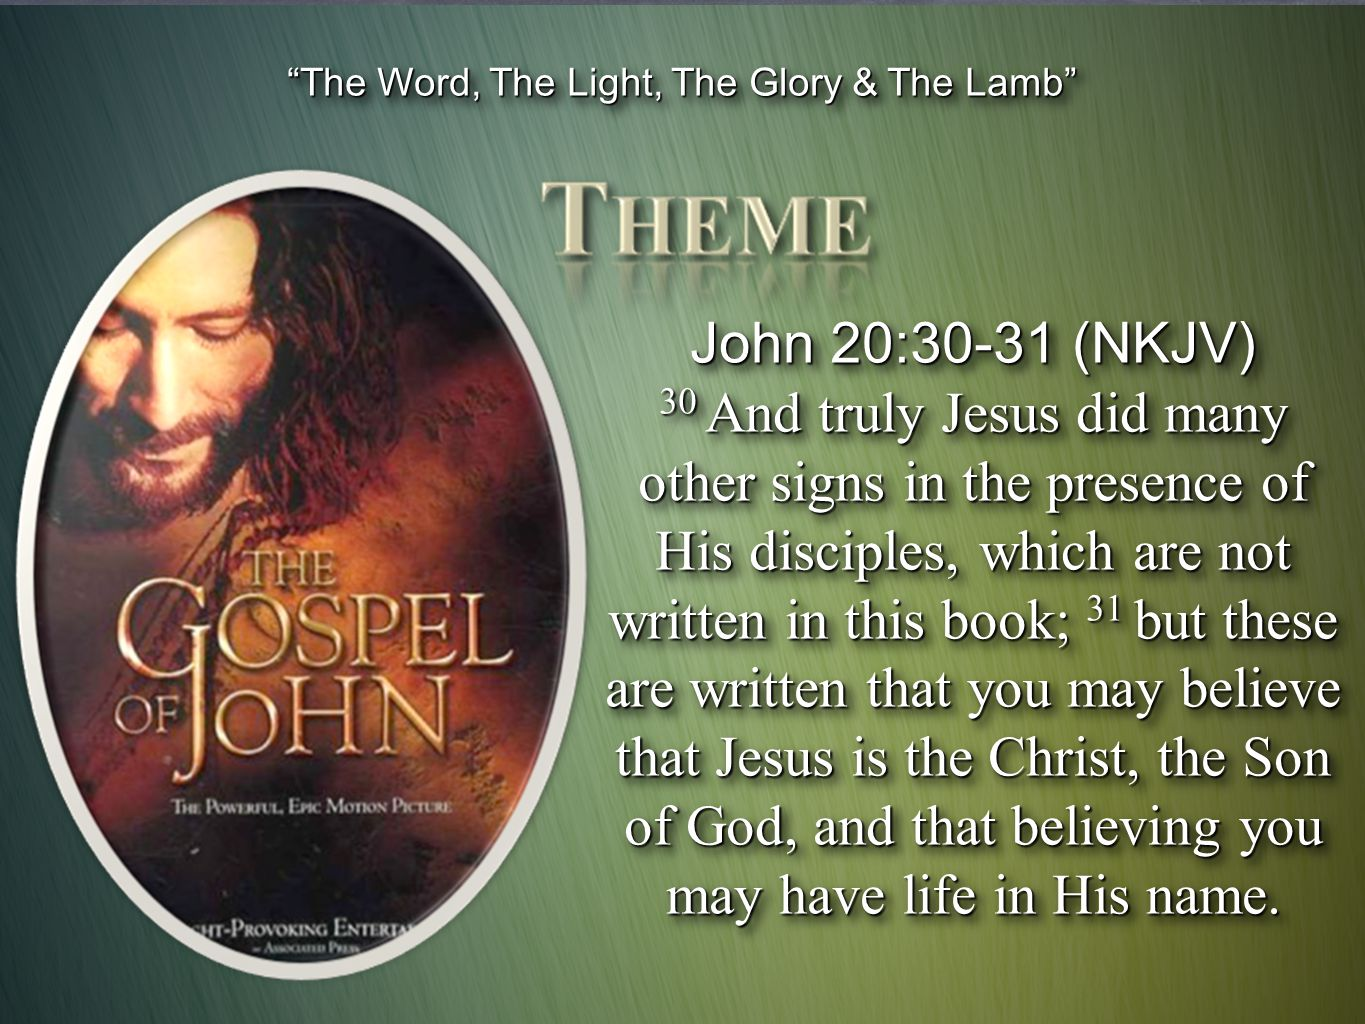 The Word, The Light, The Glory & The Lamb John 20:30-31 (NKJV) 30 And truly Jesus did many other signs in the presence of His disciples, which are not written in this book; 31 but these are written that you may believe that Jesus is the Christ, the Son of God, and that believing you may have life in His name.